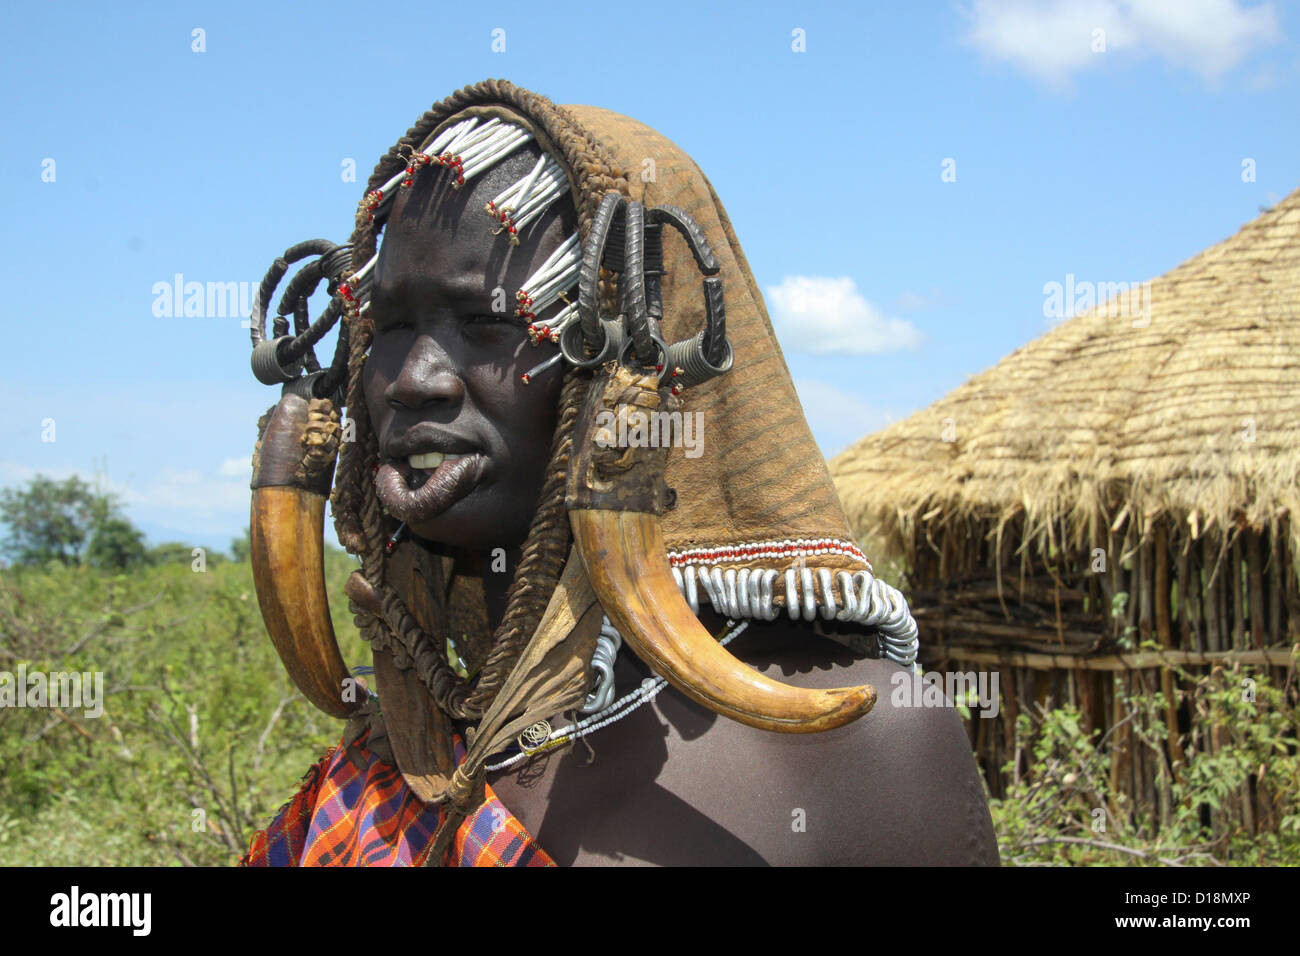 Africa, Ethiopia, Debub Omo Zone, Mursi Woman with clay lip disc as body ornaments - Stock Image